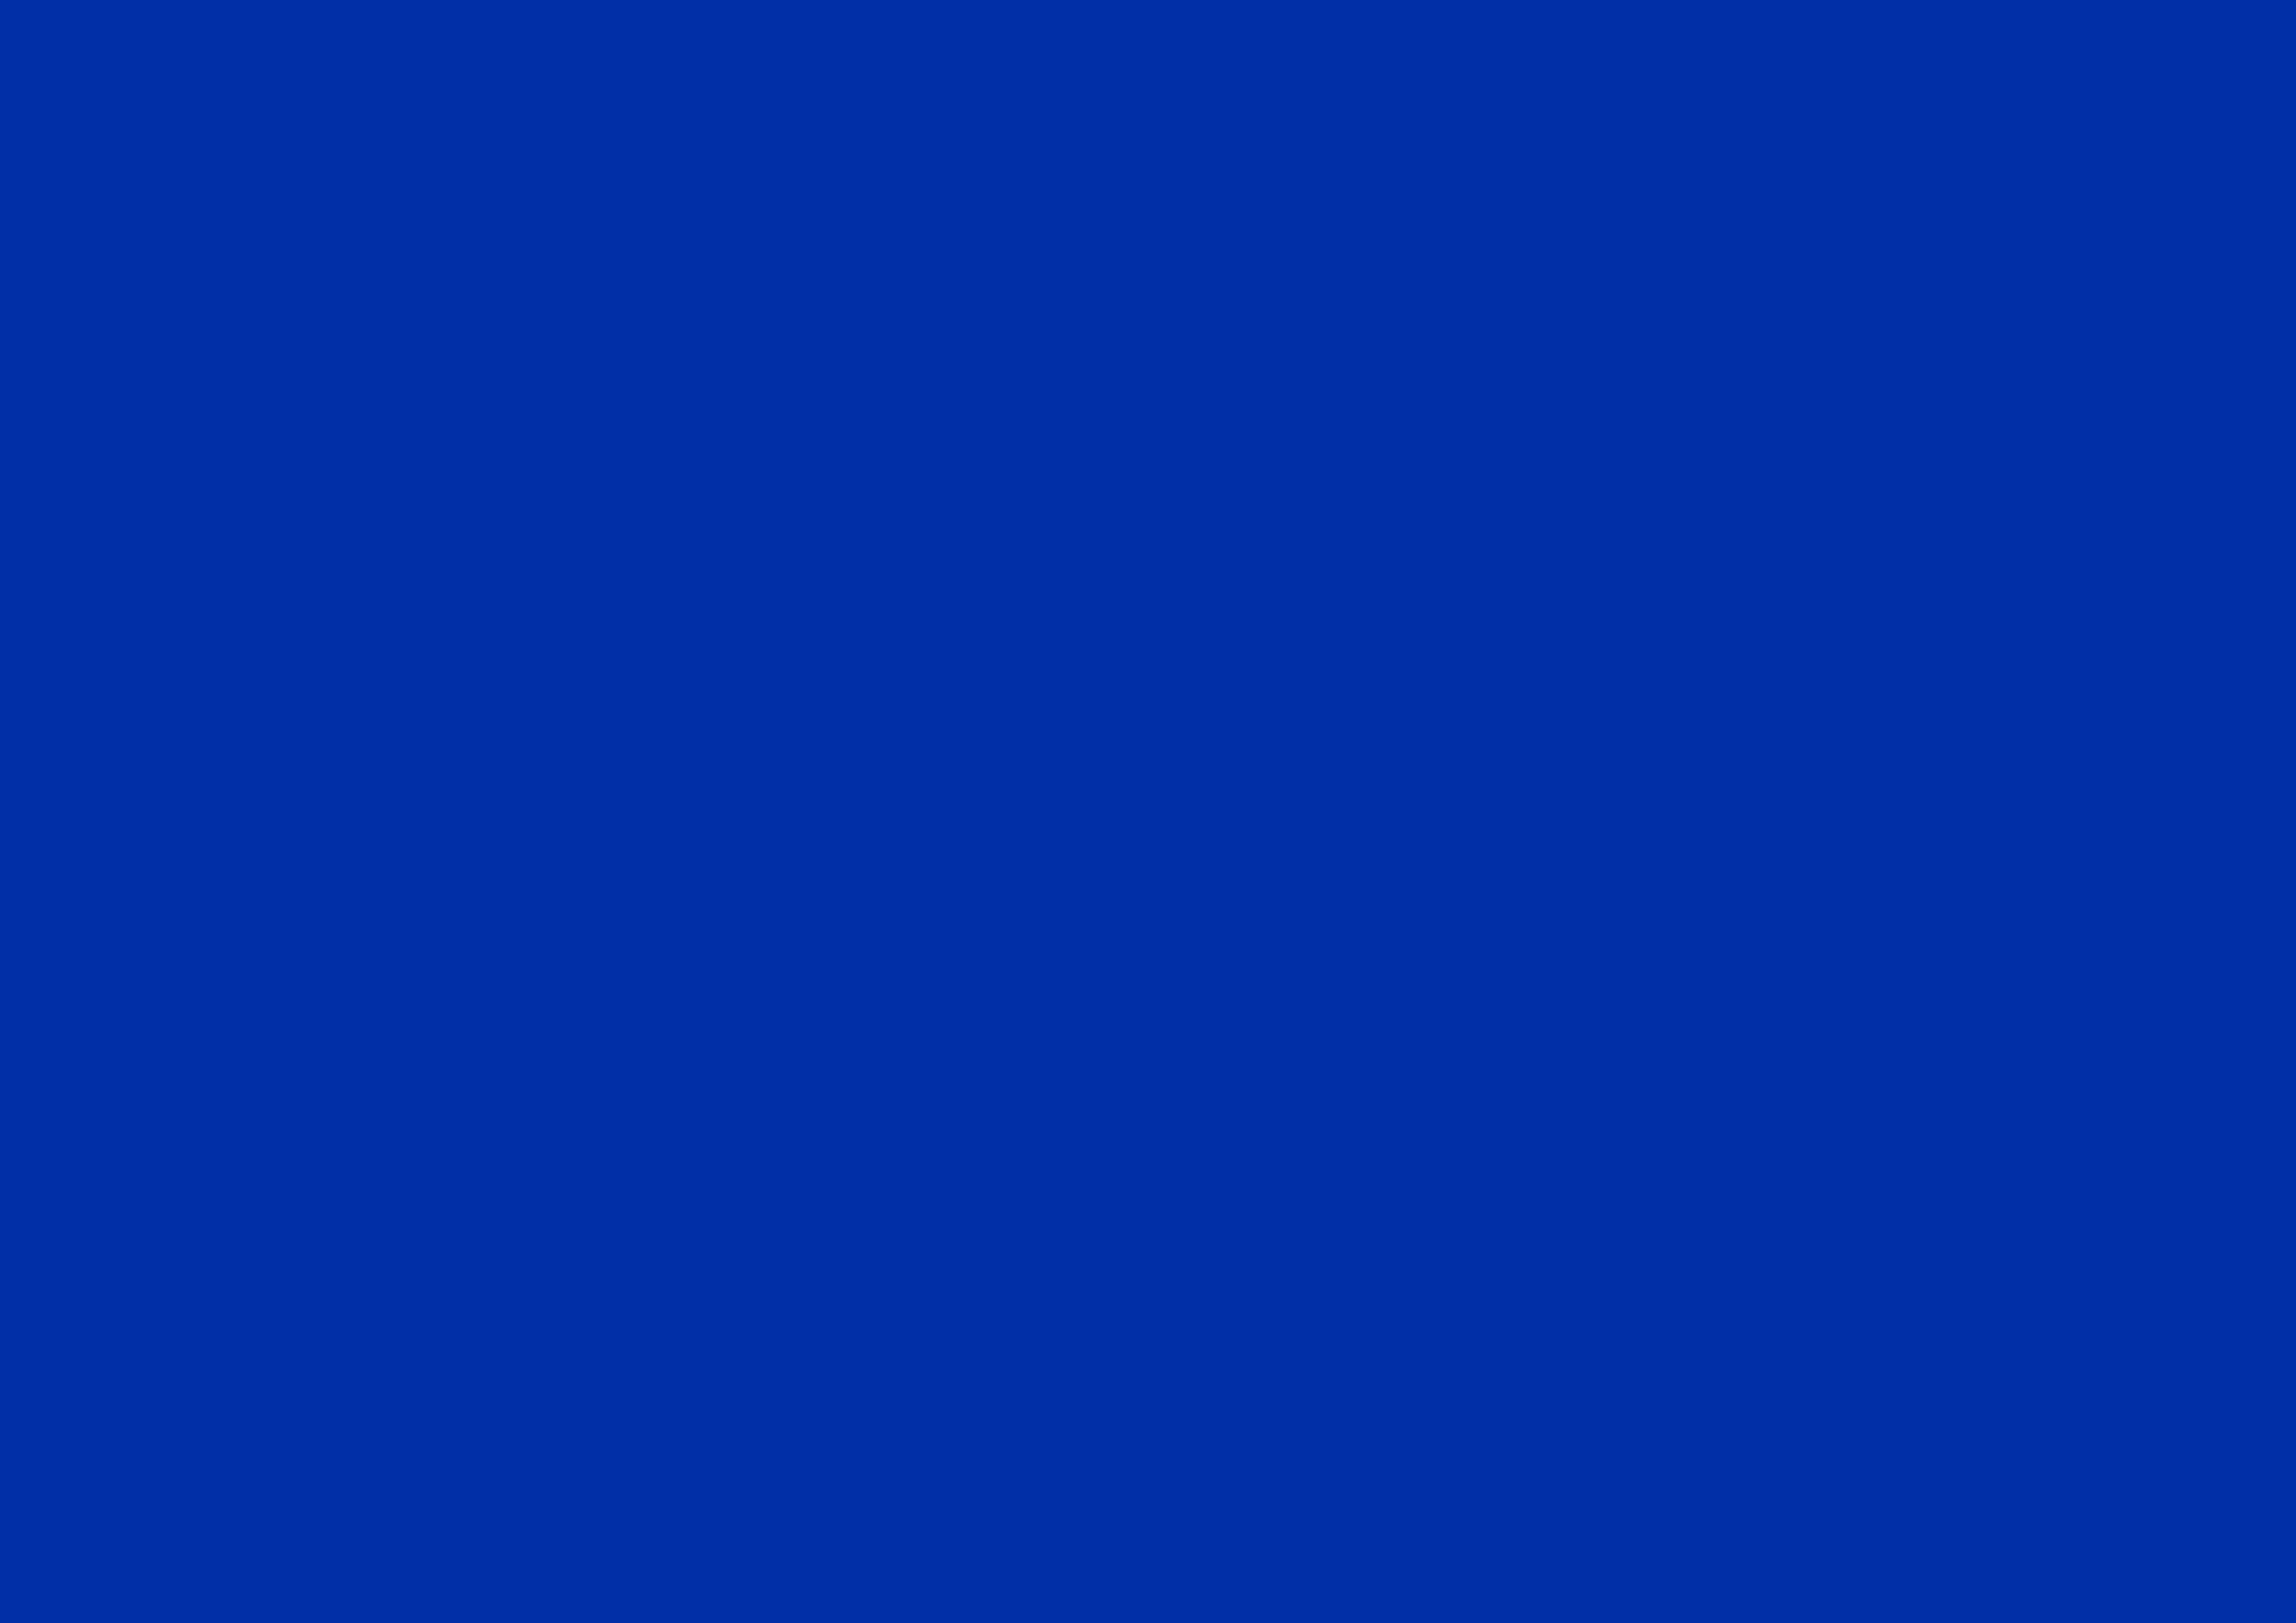 3508x2480 International Klein Blue Solid Color Background